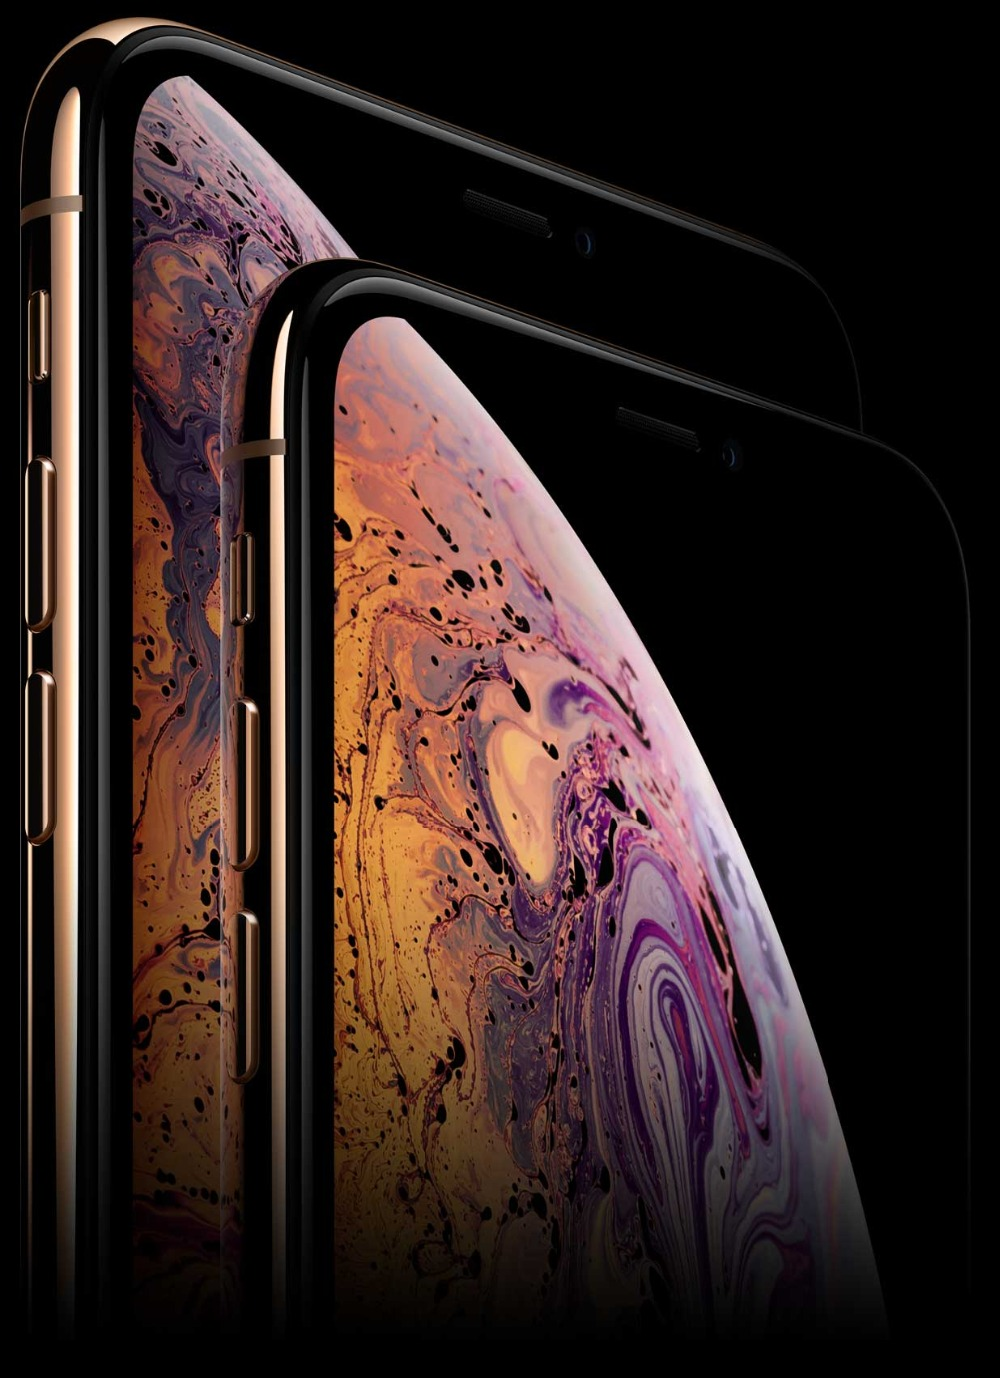 Original Used Apple iPhone XS Max 6.5 inch OLED Display 4G LTE Face ID Mobile Phone 4gb RAM 64gb/256gb ROM A12 IOS12 Smartphone 29